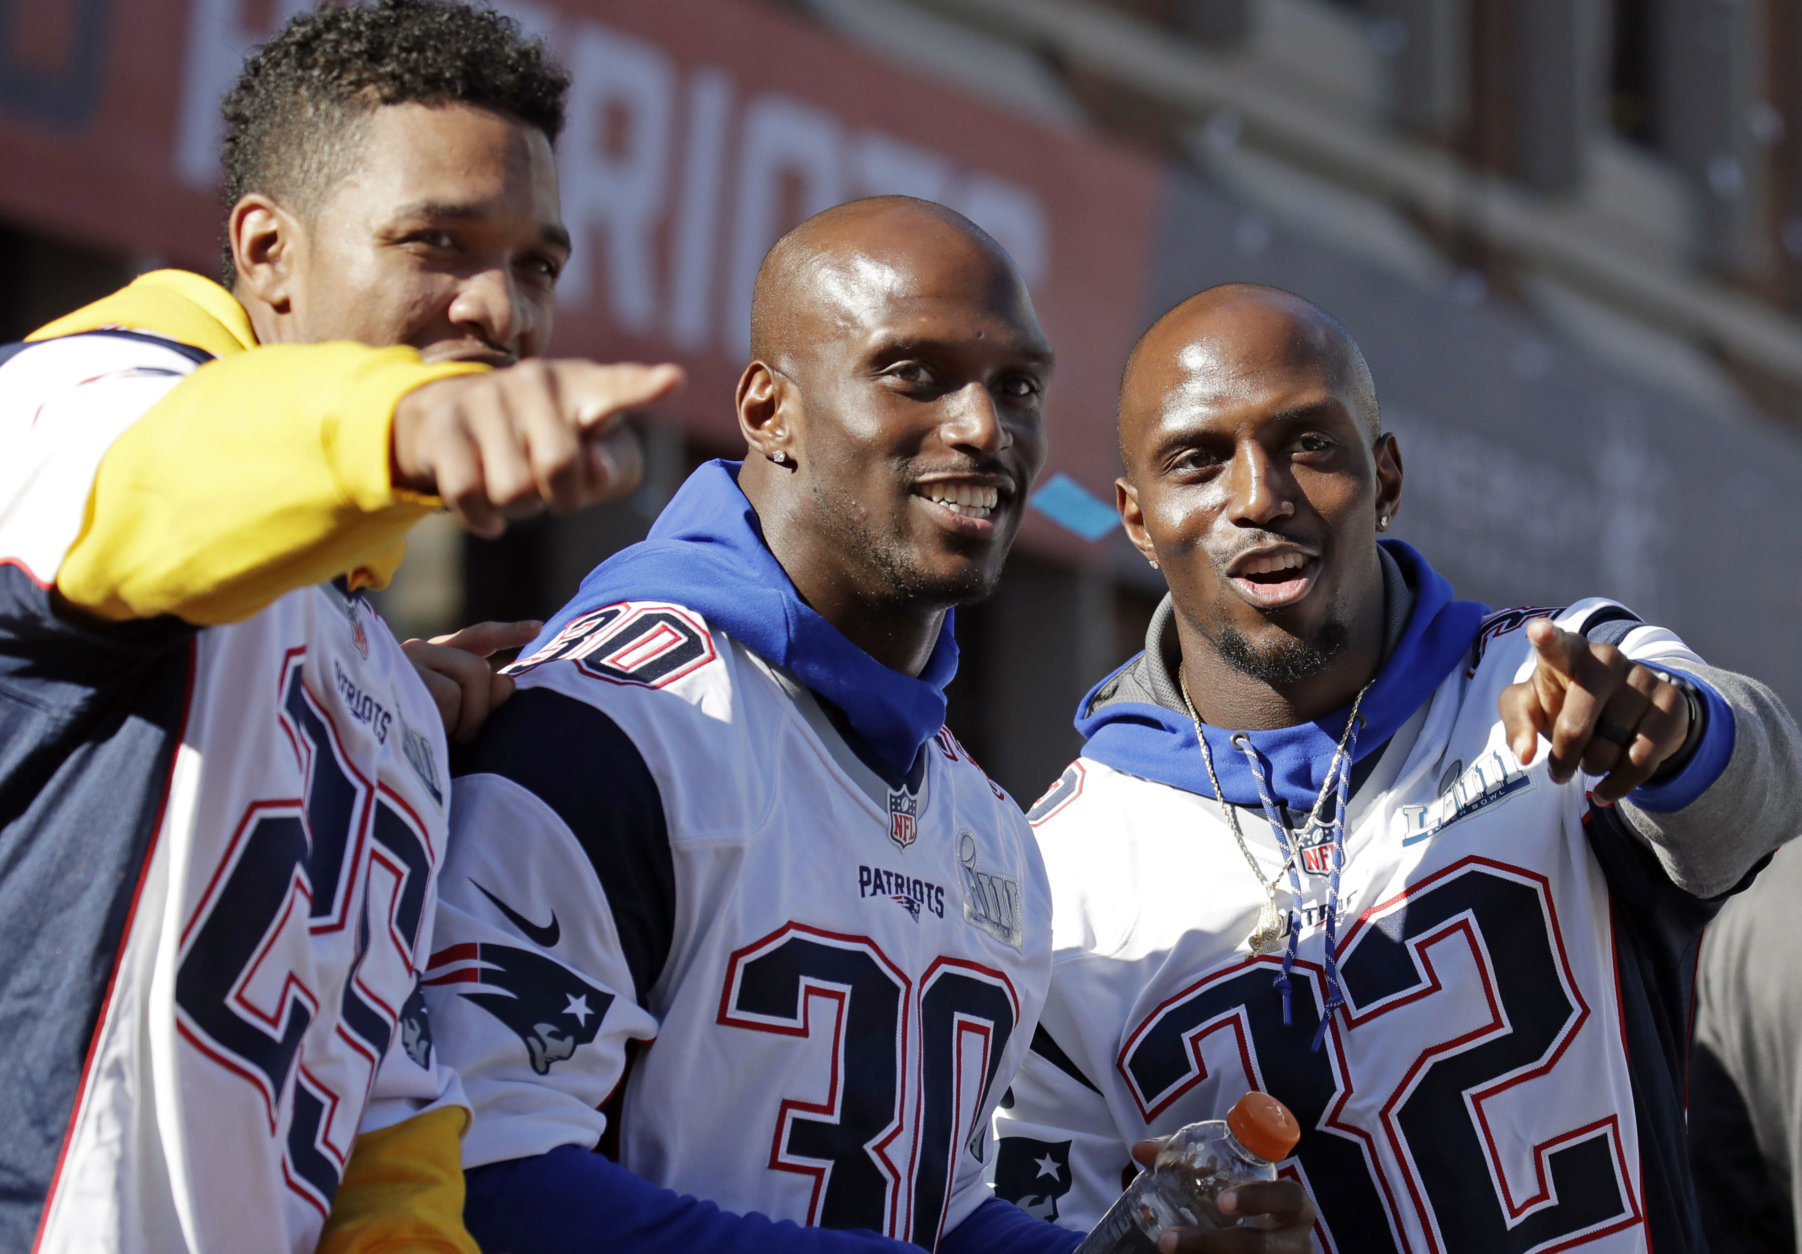 New England Patriots (l-r) Eric Rowe, Jason McCourty and Devin McCourty react to fans during their victory parade through downtown Boston, Tuesday, Feb. 5, 2019, to celebrate their win over the Los Angeles Rams in Sunday's NFL Super Bowl 53 football game in Atlanta. The Patriots have won six Super Bowl championships. (AP Photo/Elise Amendola)